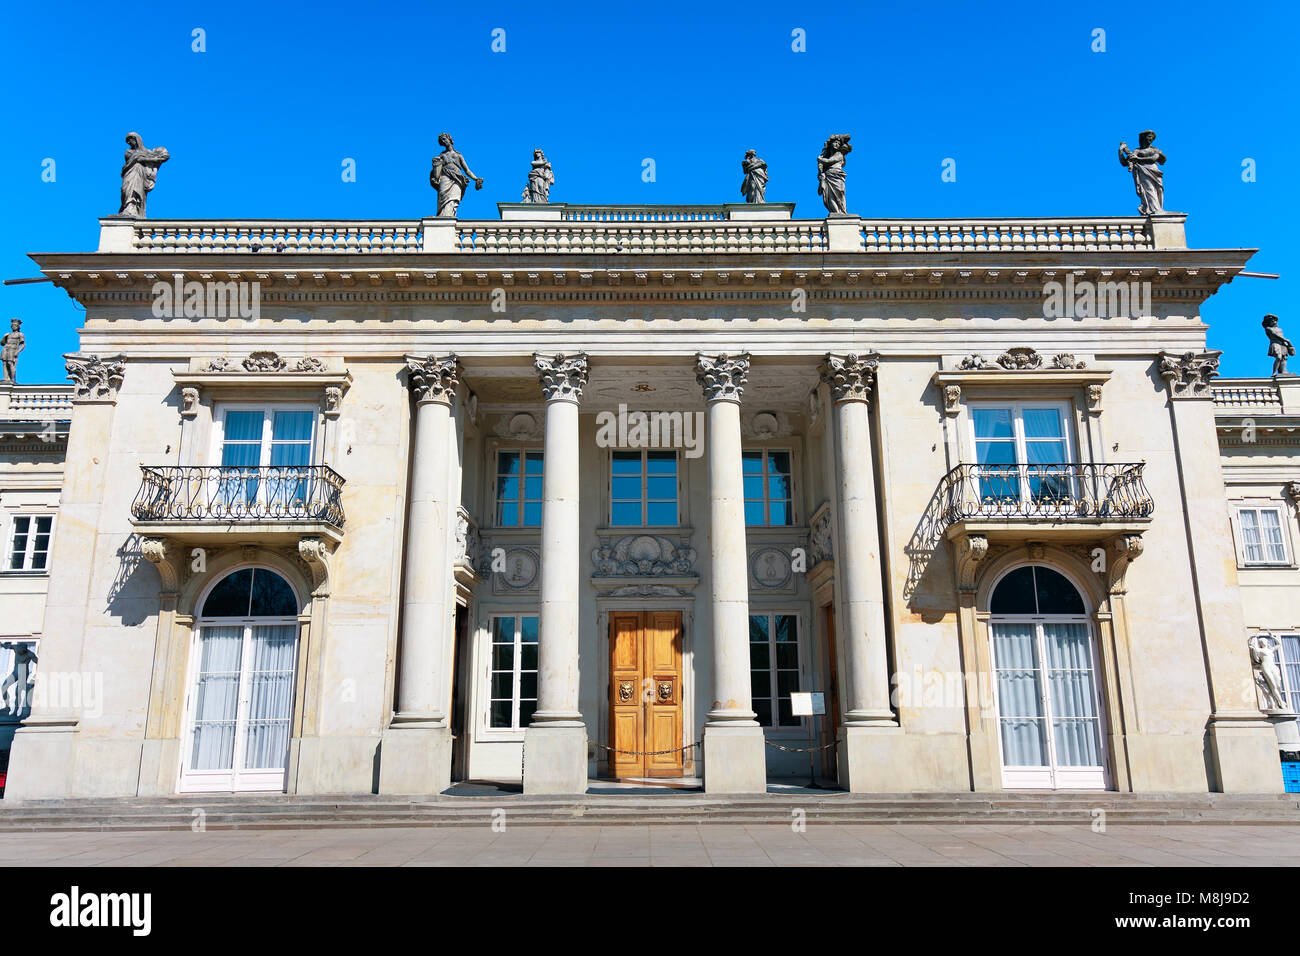 Neoclassical Palace on the Water  in  Royal Baths Park, the major tourist attraction of  WARSAW CITY, POLAND - APRIL - Stock Image